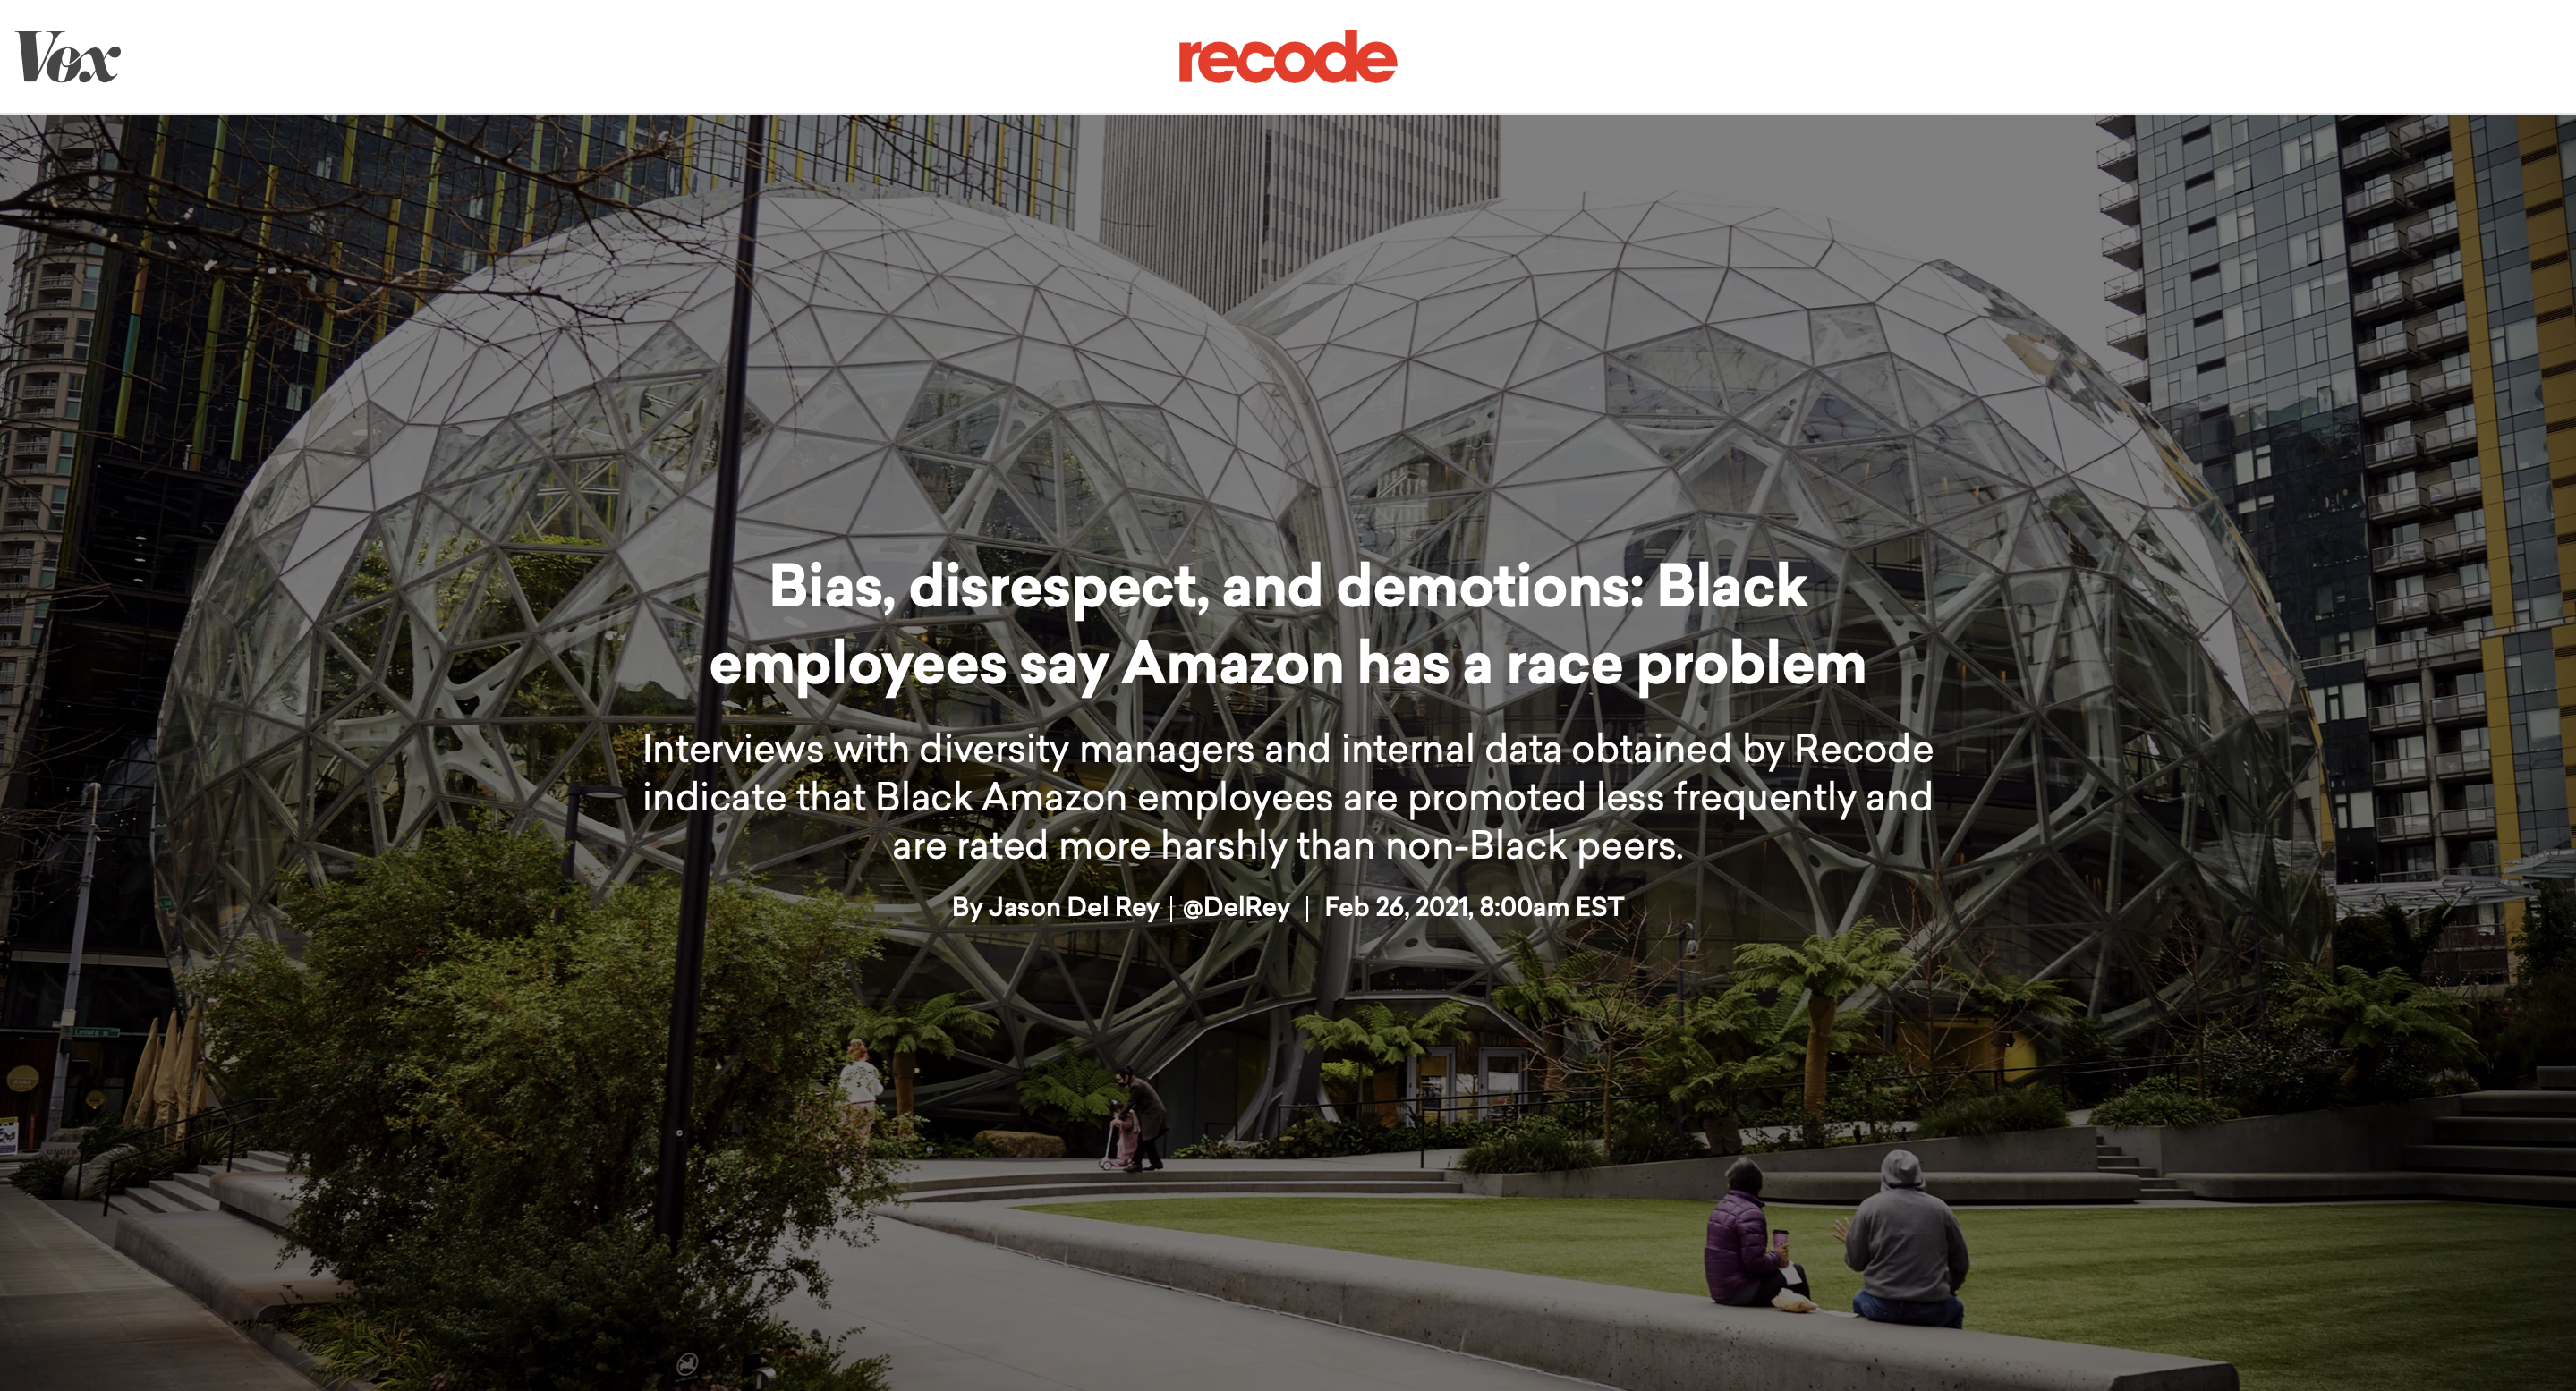 Vox Recode: Bias, disrespect, and demotions: Black employees say Amazon has a race problem